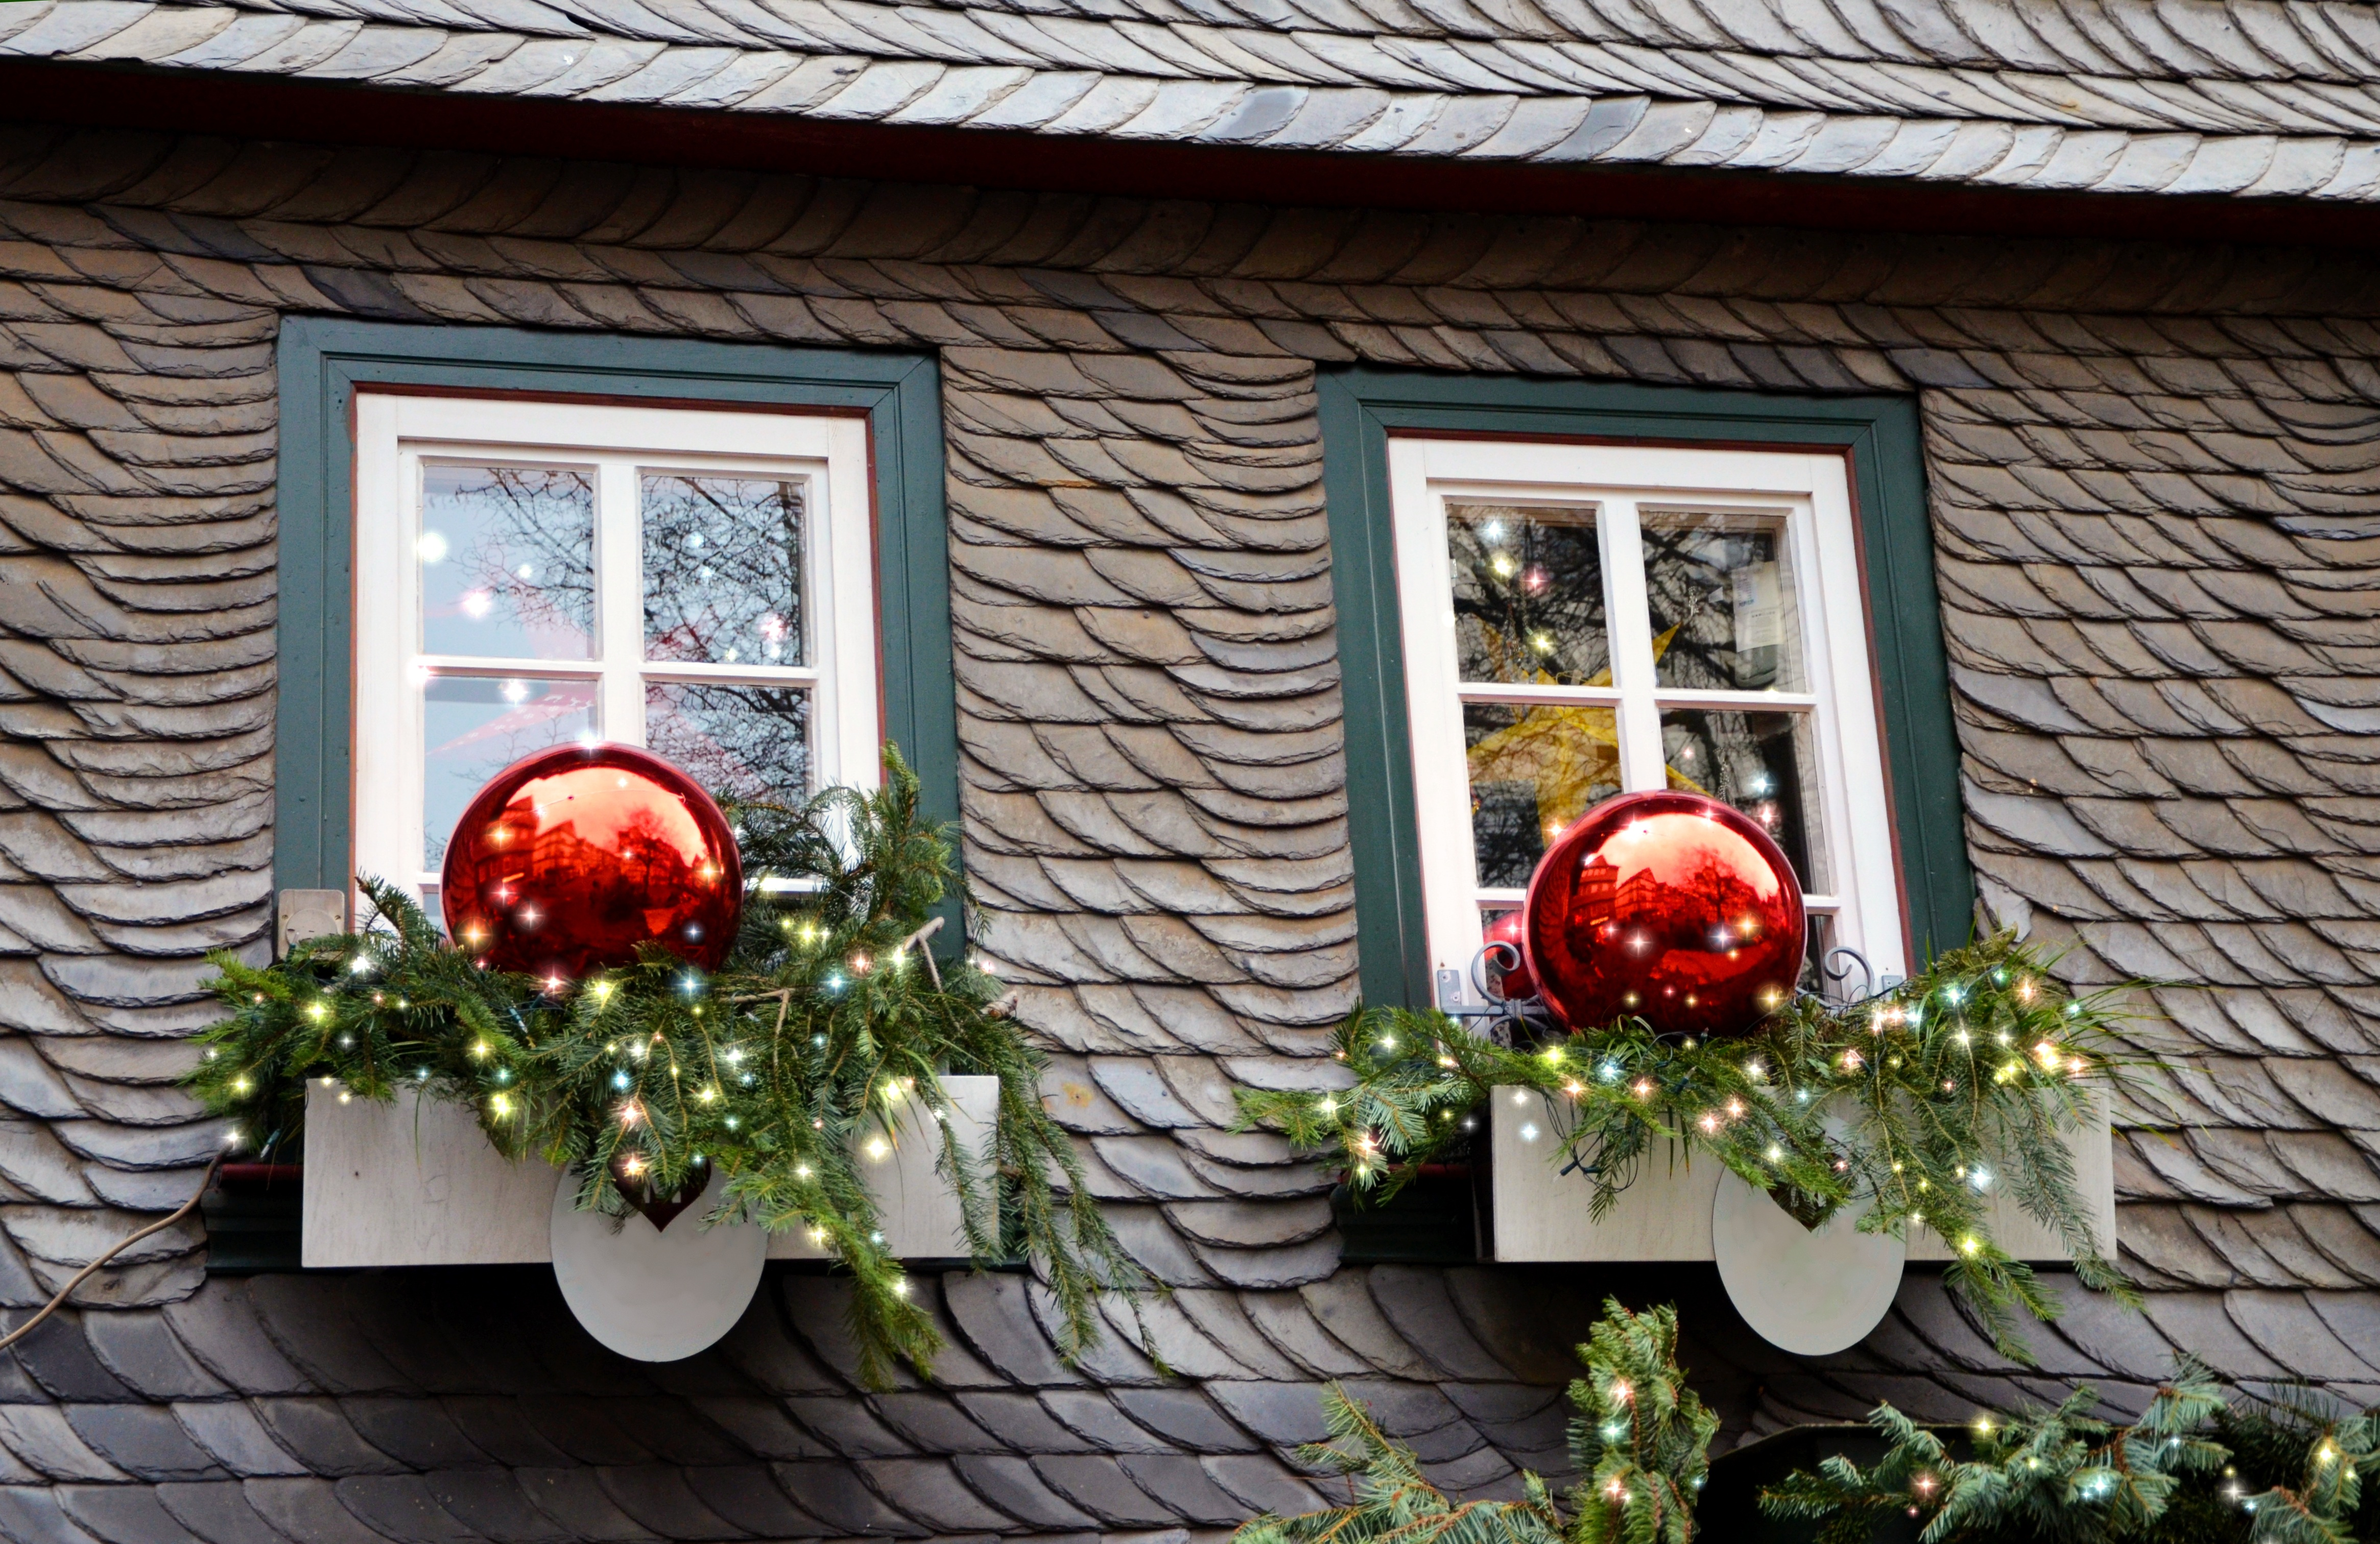 Christmas Decorations On The Windows Of The House Free Image